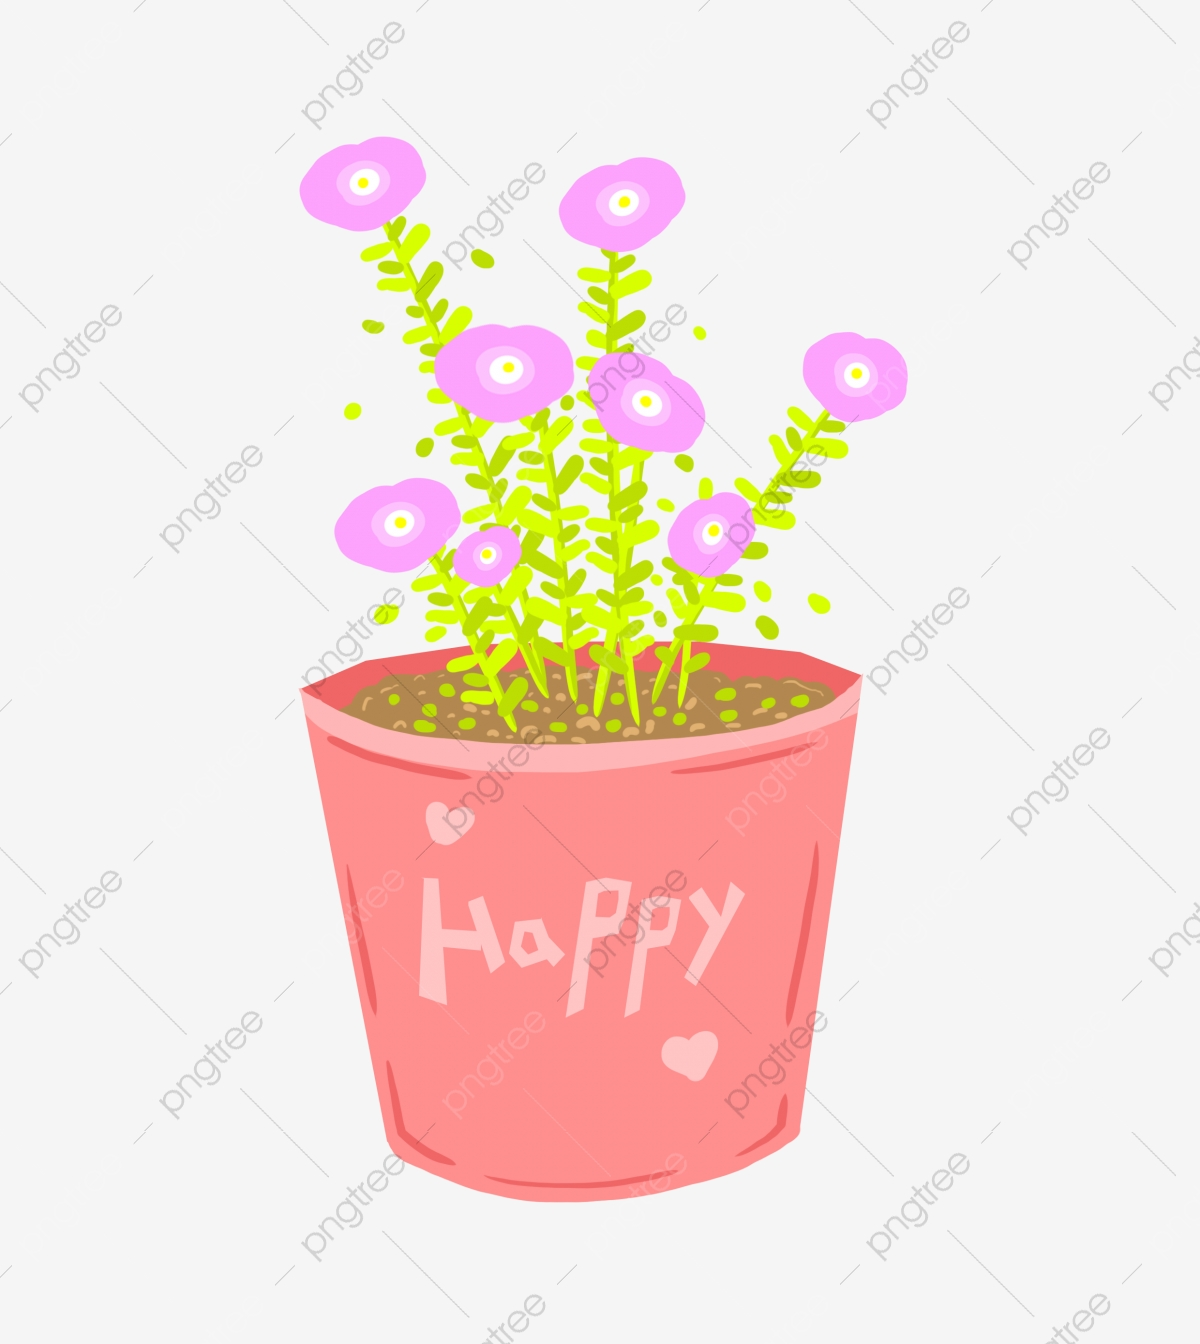 Pink Flowers Pink Flower Pot Beautiful Potted Plant Beautiful Flowers Cartoon Illustration Hand Drawn Potted Illustration Pink Flowers Png Transparent Clipart Image And Psd File For Free Download